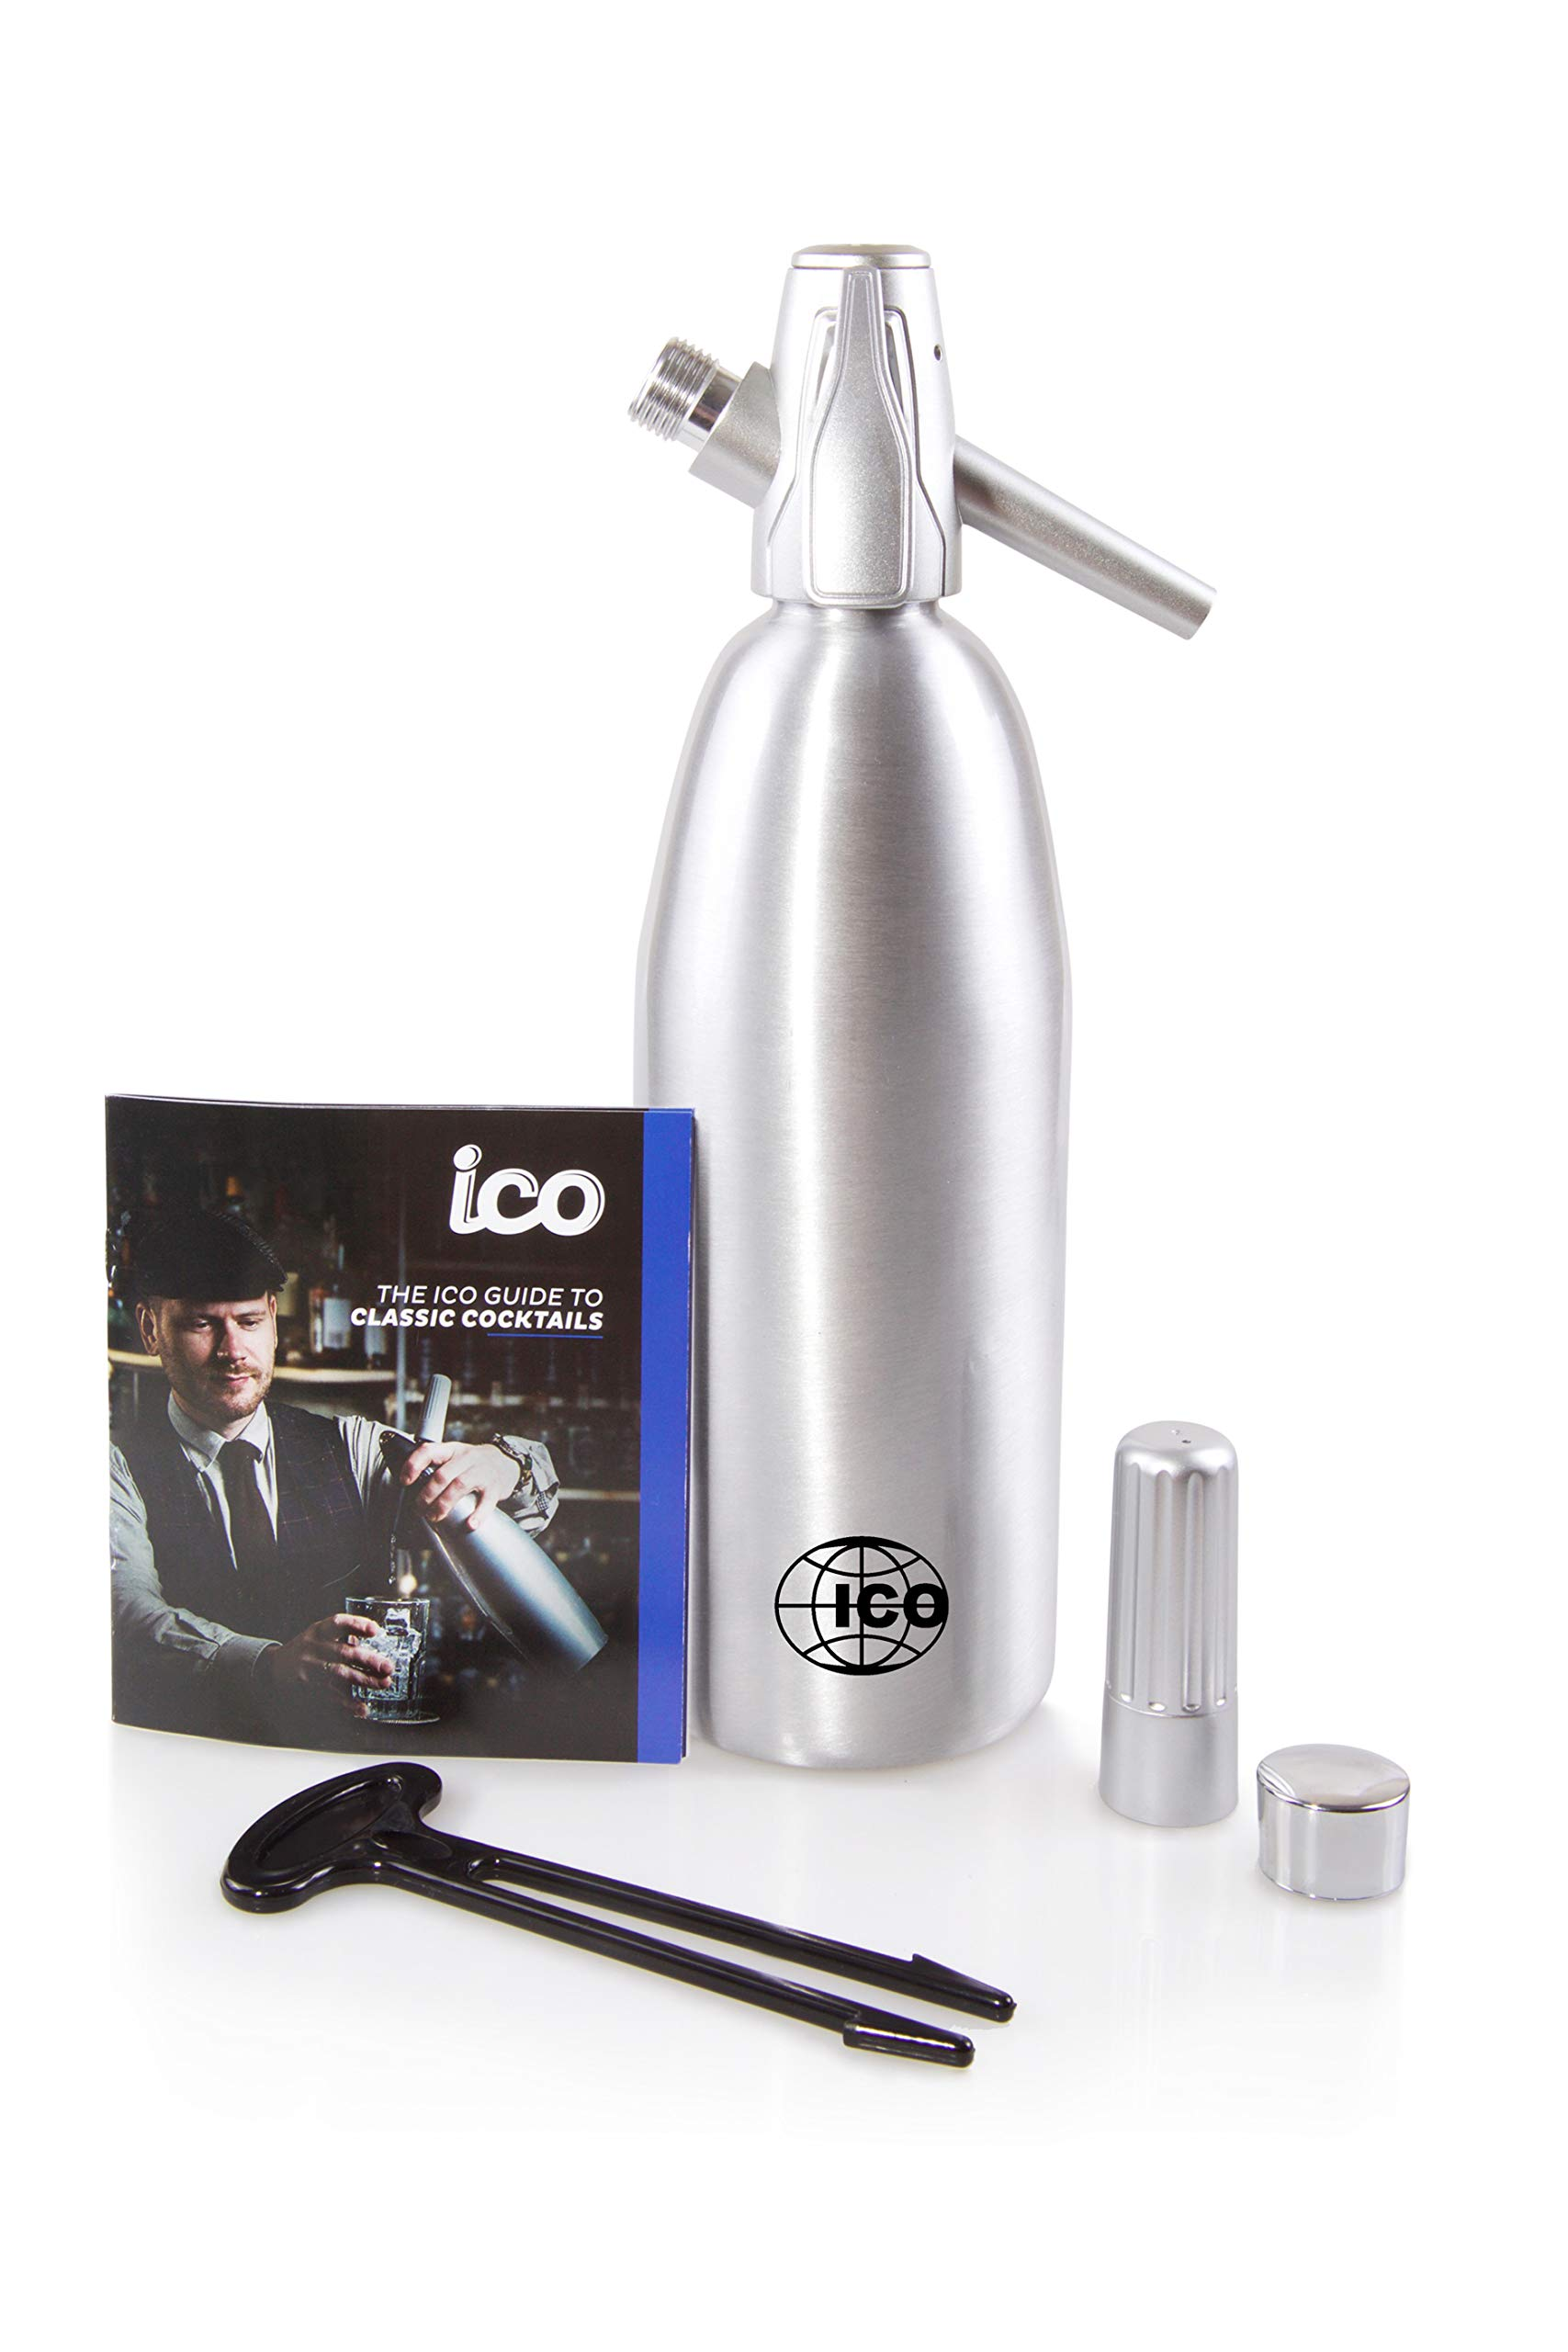 Impeccable Culinary Objects (ICO) ICO011 Soda siphon, 1L/1Pint, Silver